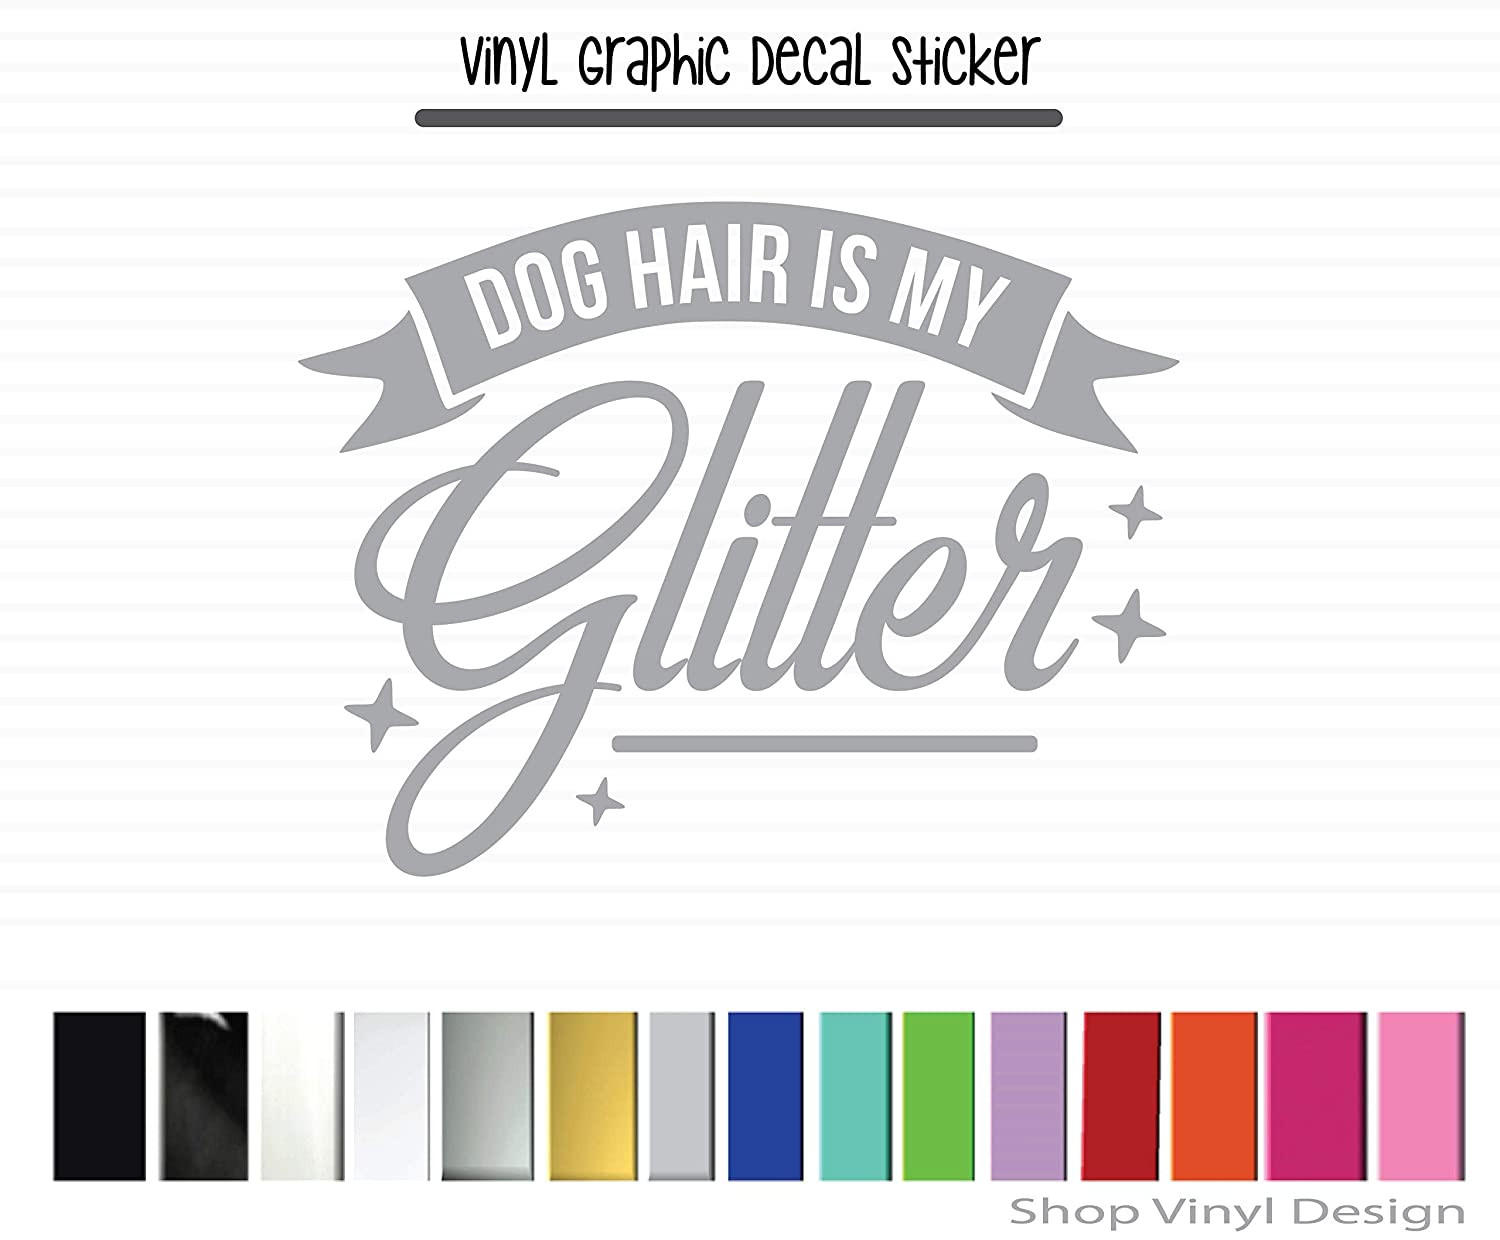 Dog Hair Is My Glitter High Quality Outdoor Rated Vinyl Vinyl Graphic Decal Sticker for Vehicle Car Truck SUV Window Laptop Cooler Planner Locker Safe